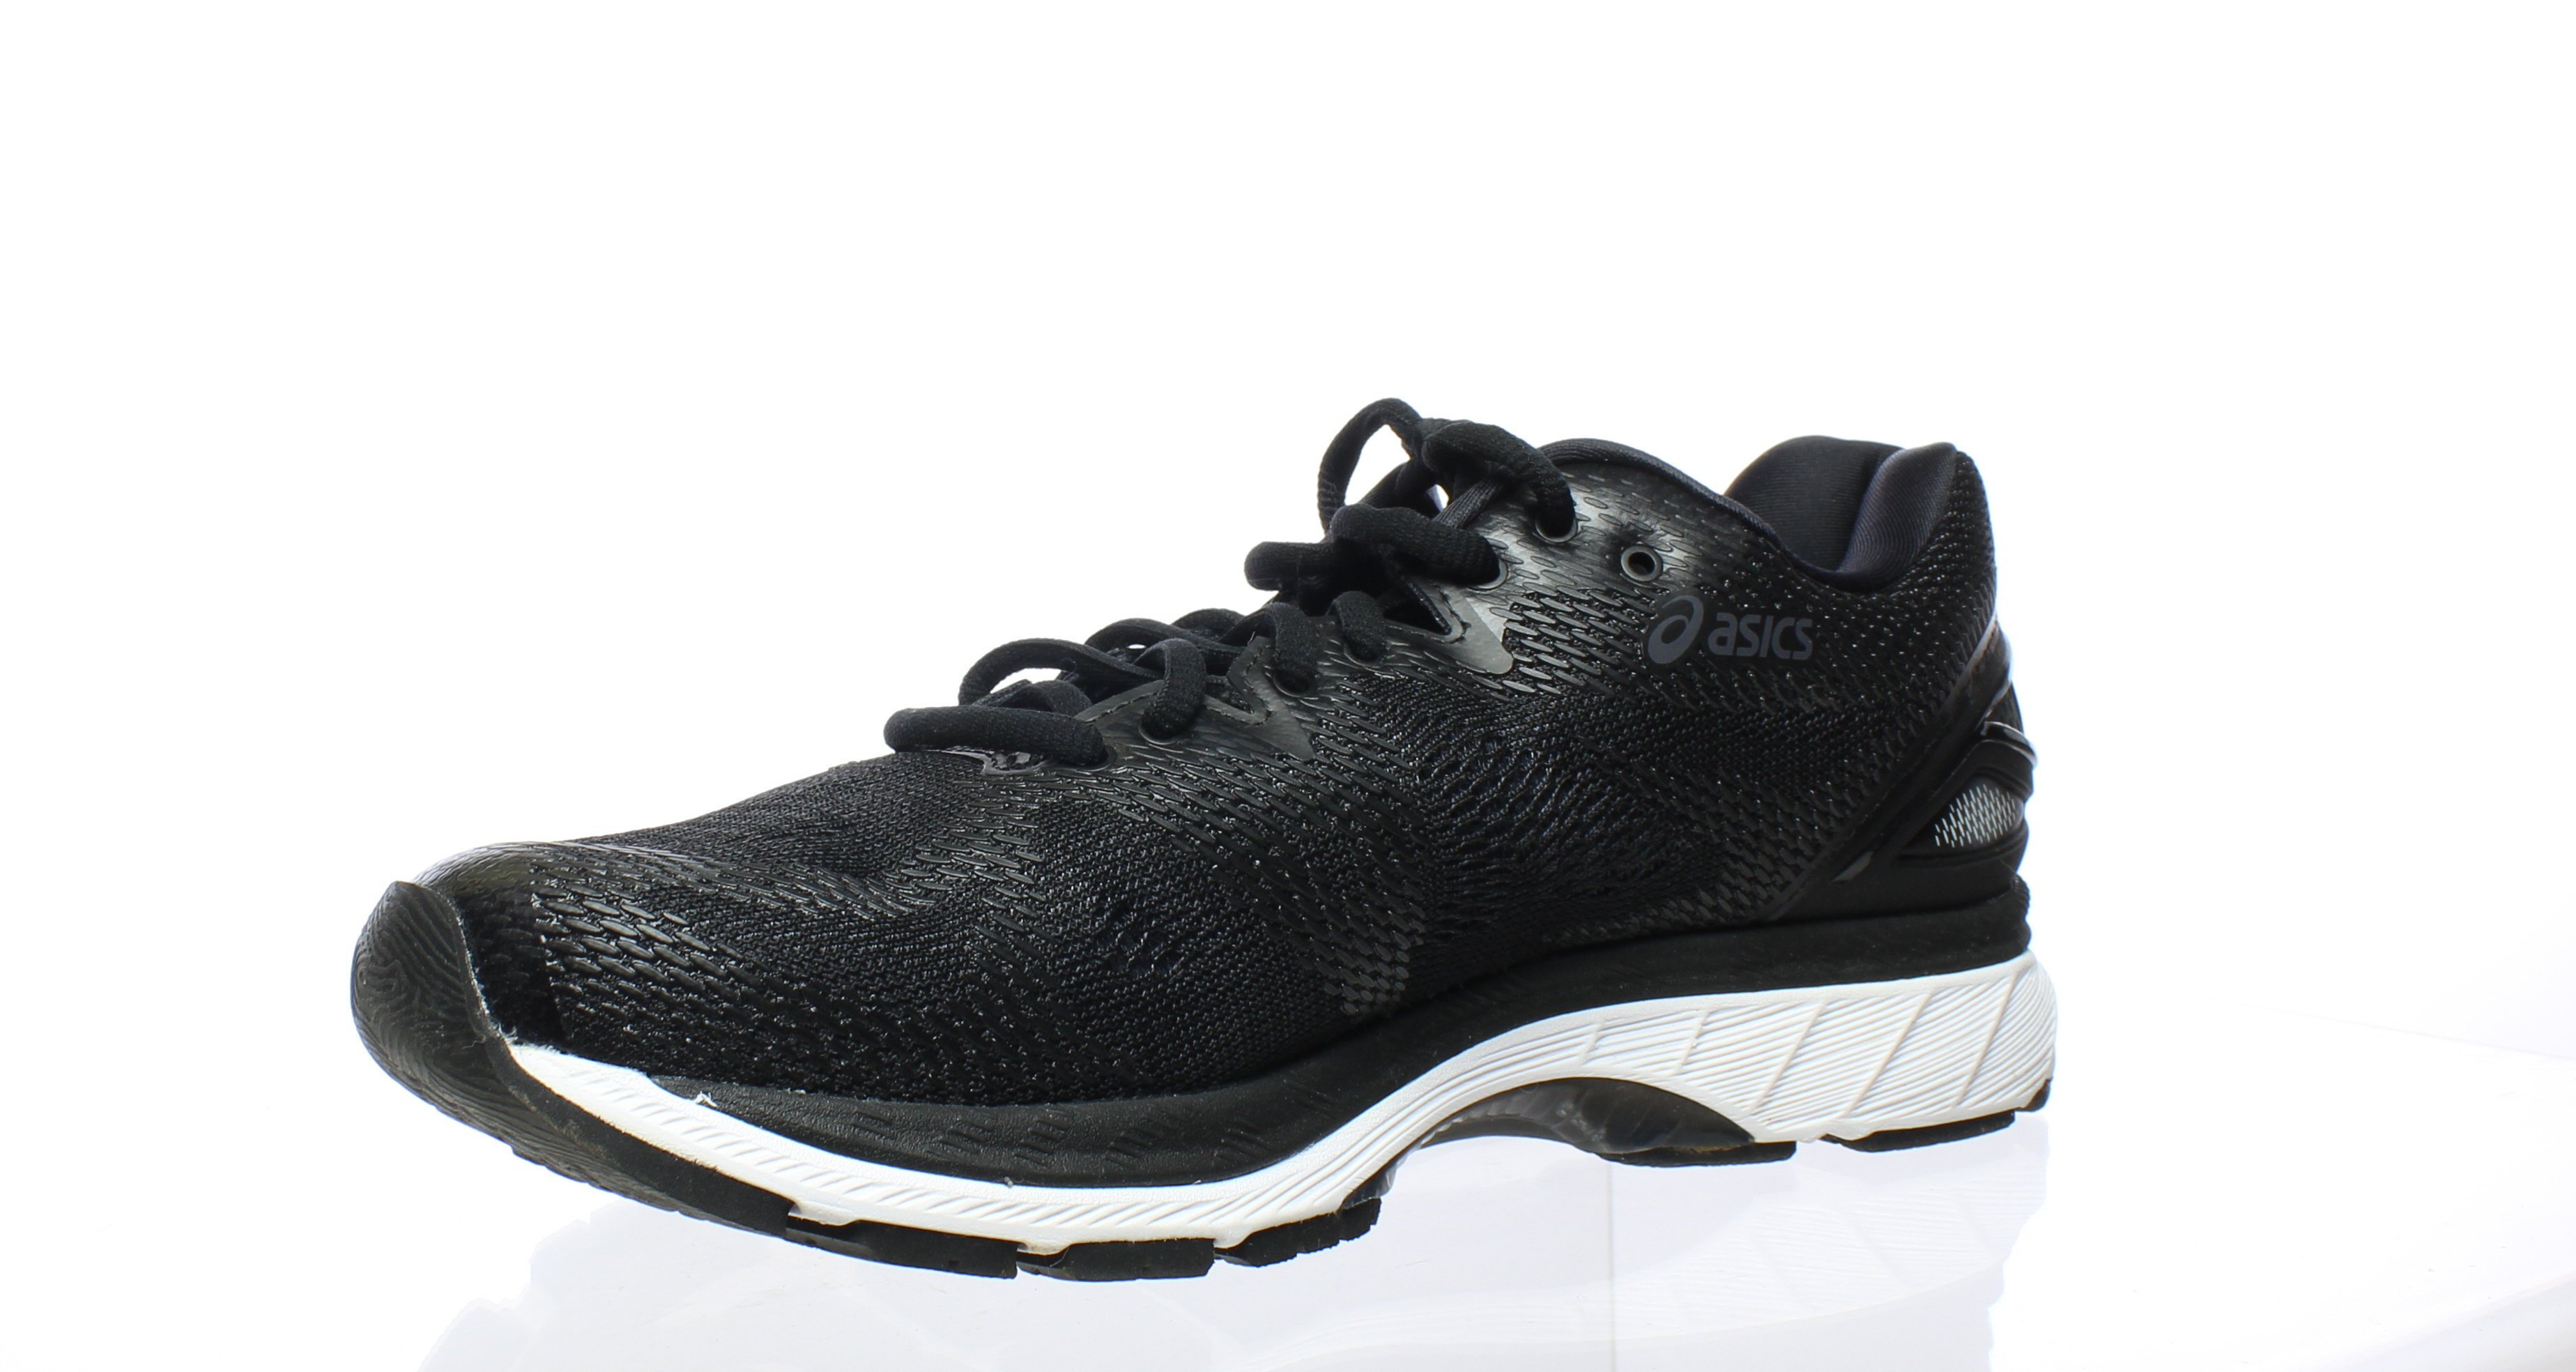 Hommes 20 Chaussures Asics 8442020 Gel nimbus course Taille